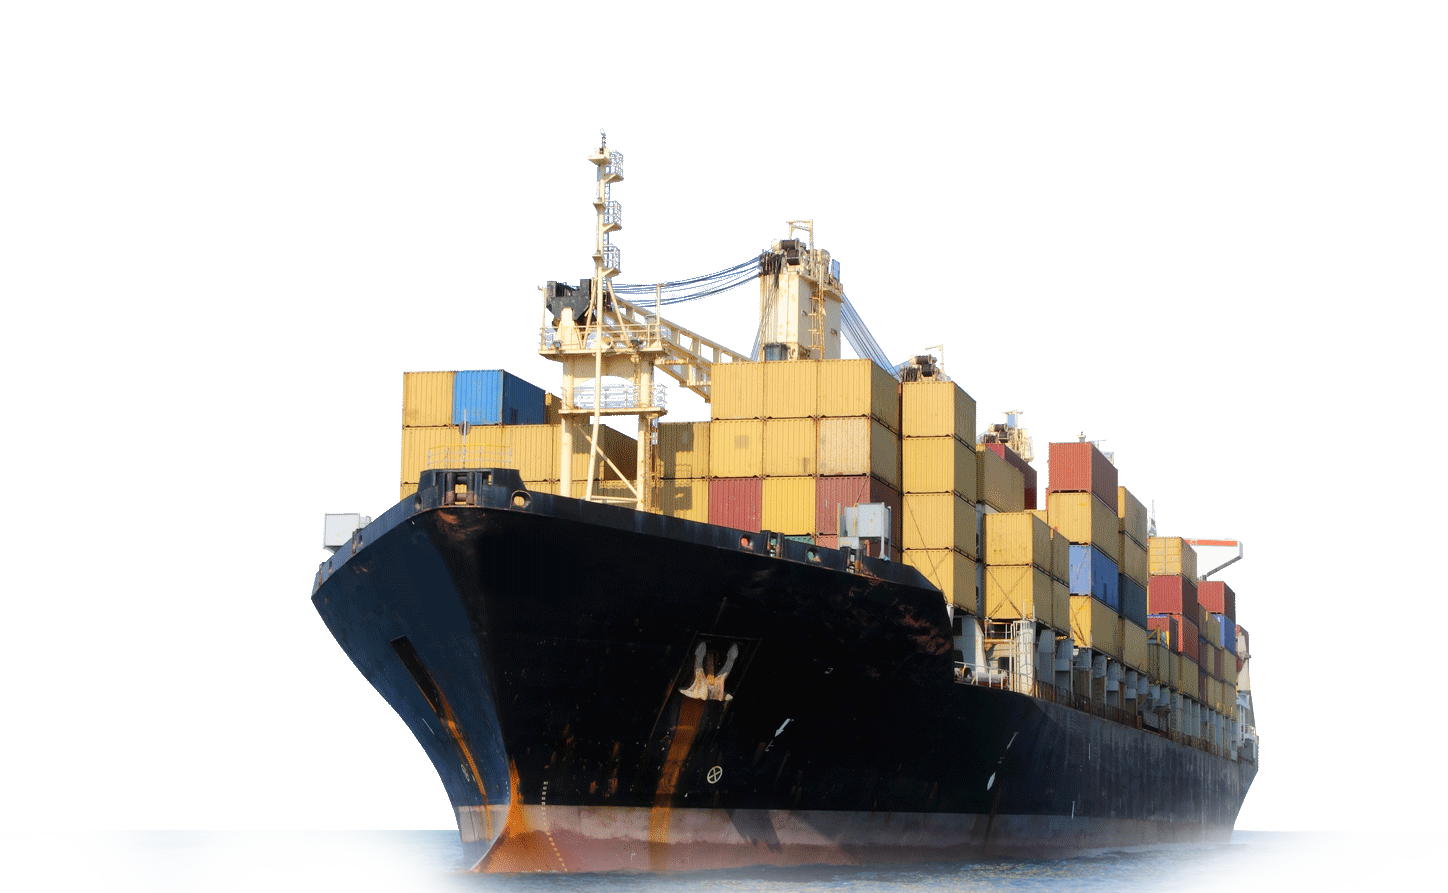 Cargo ship png. Freight transport container transprent